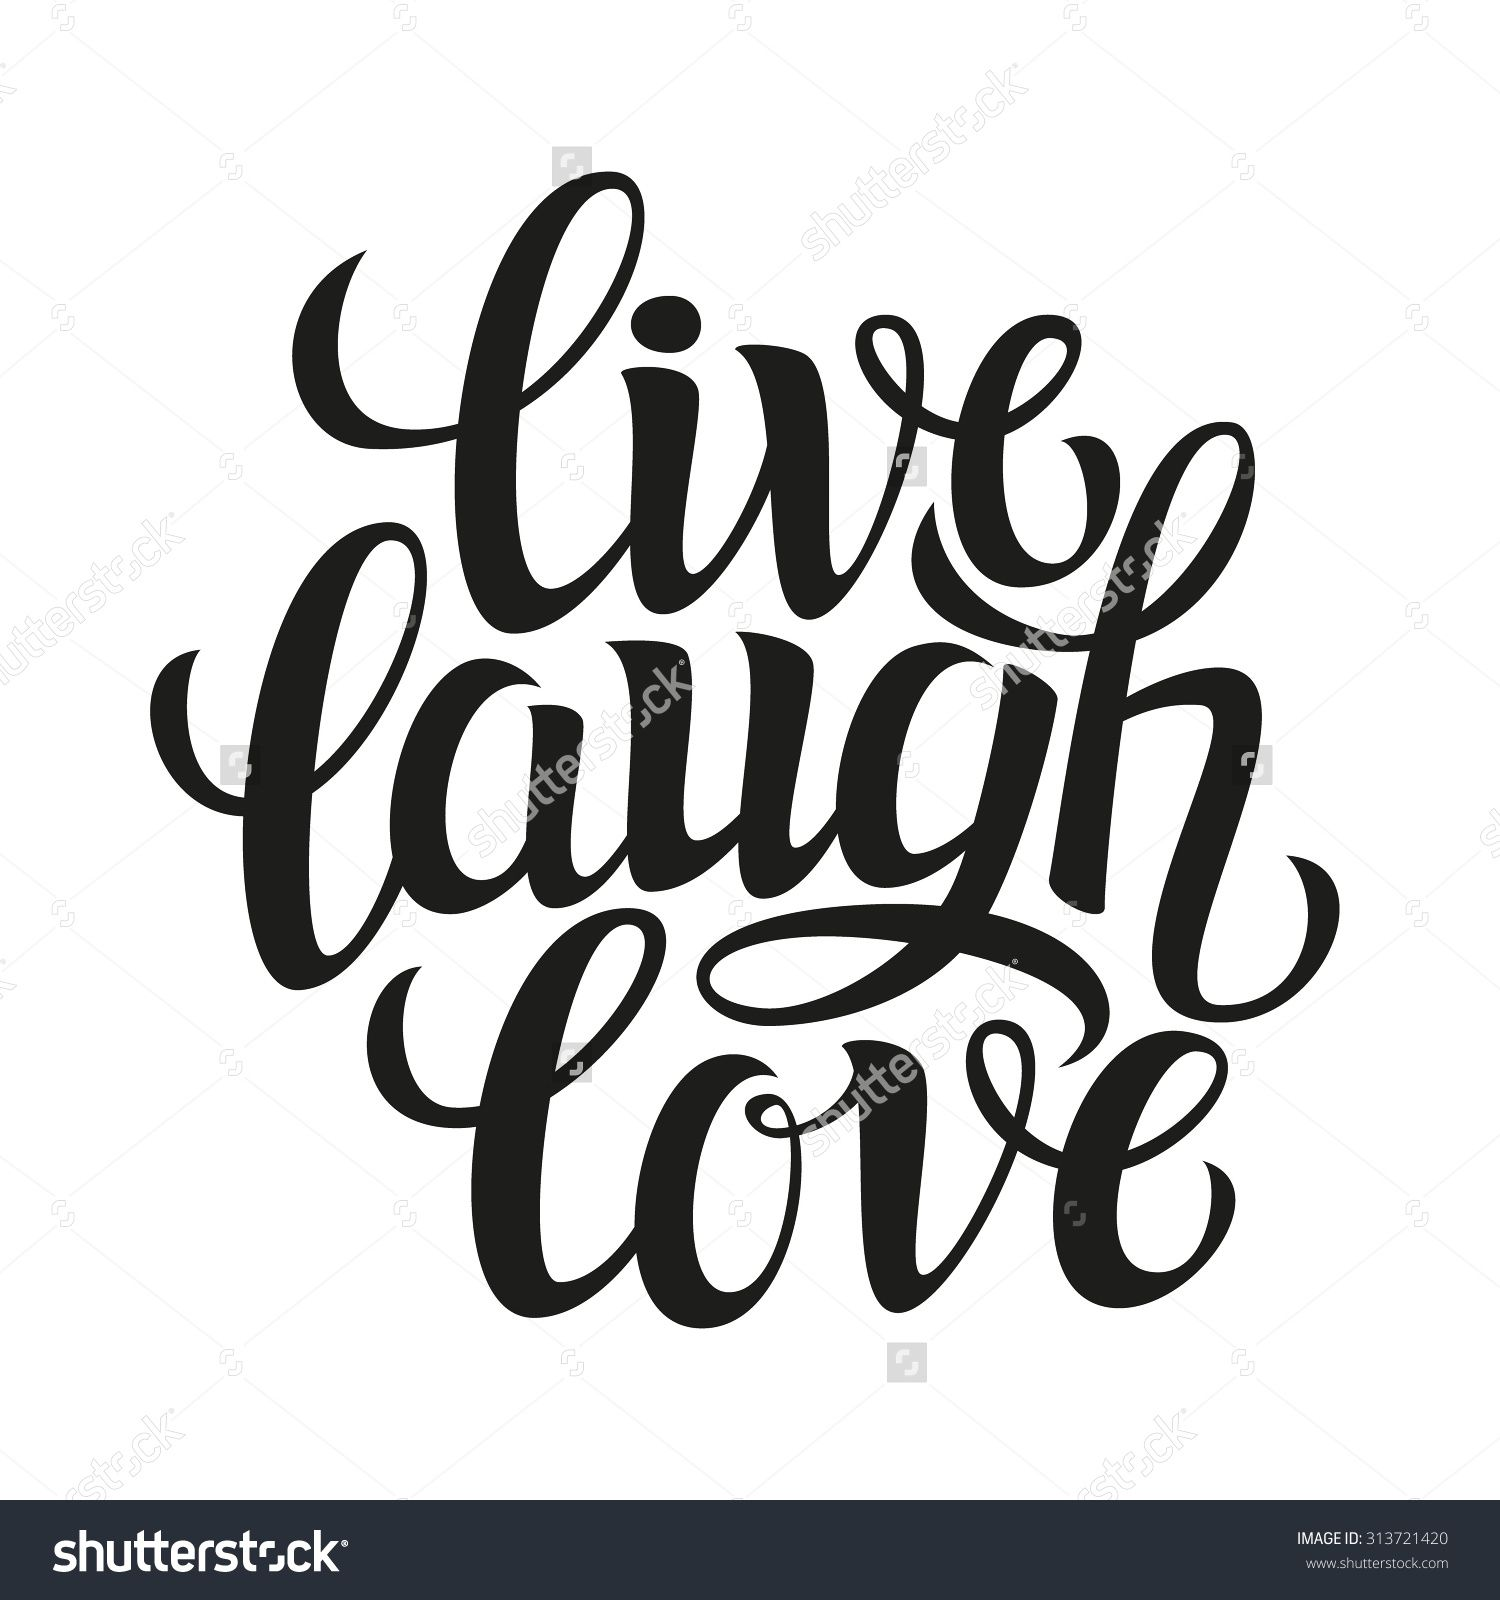 Quote poster design inspiration - Hand Drawn Typography Poster Inspirational Quote Live Laugh Love For Greeting Cards